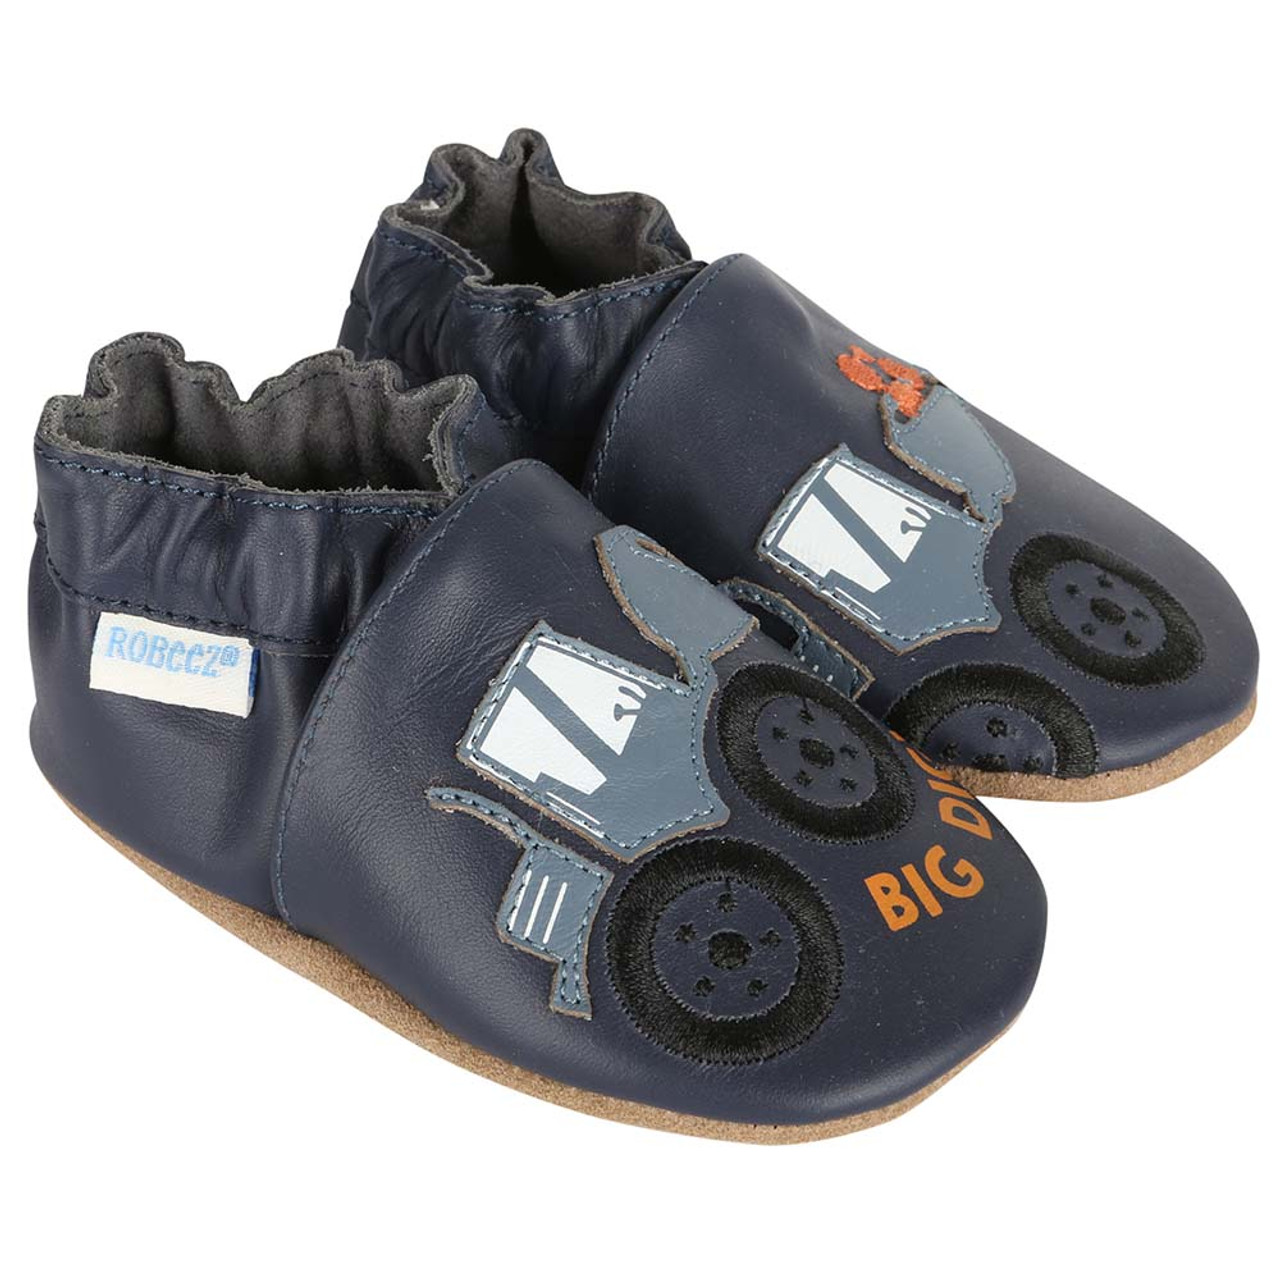 4946df3e61f7d3 Boys bay shoes in navy leather featuring diggers. Soft soles for babies